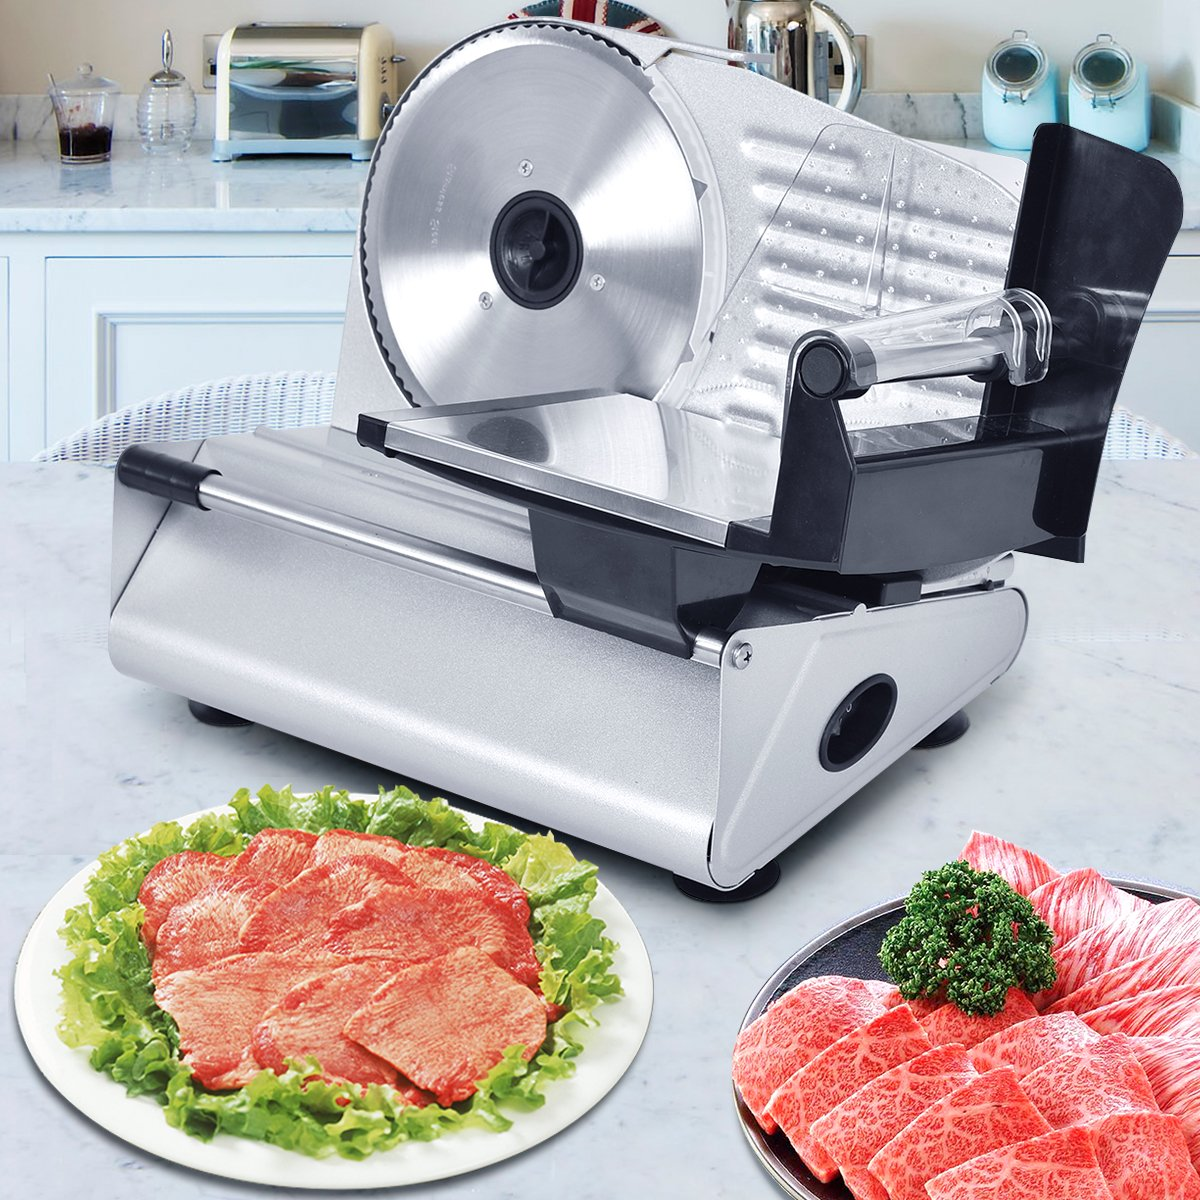 Tangkula Electric Slicer 7.5'' Commercial Meat Slicer Machine for Home Kitchen Restaurant Heavy Duty Chrome Plated Stainless Professional Semi-Auto Kitchen Deli Cheese Food Vegetable Slicer Cutter